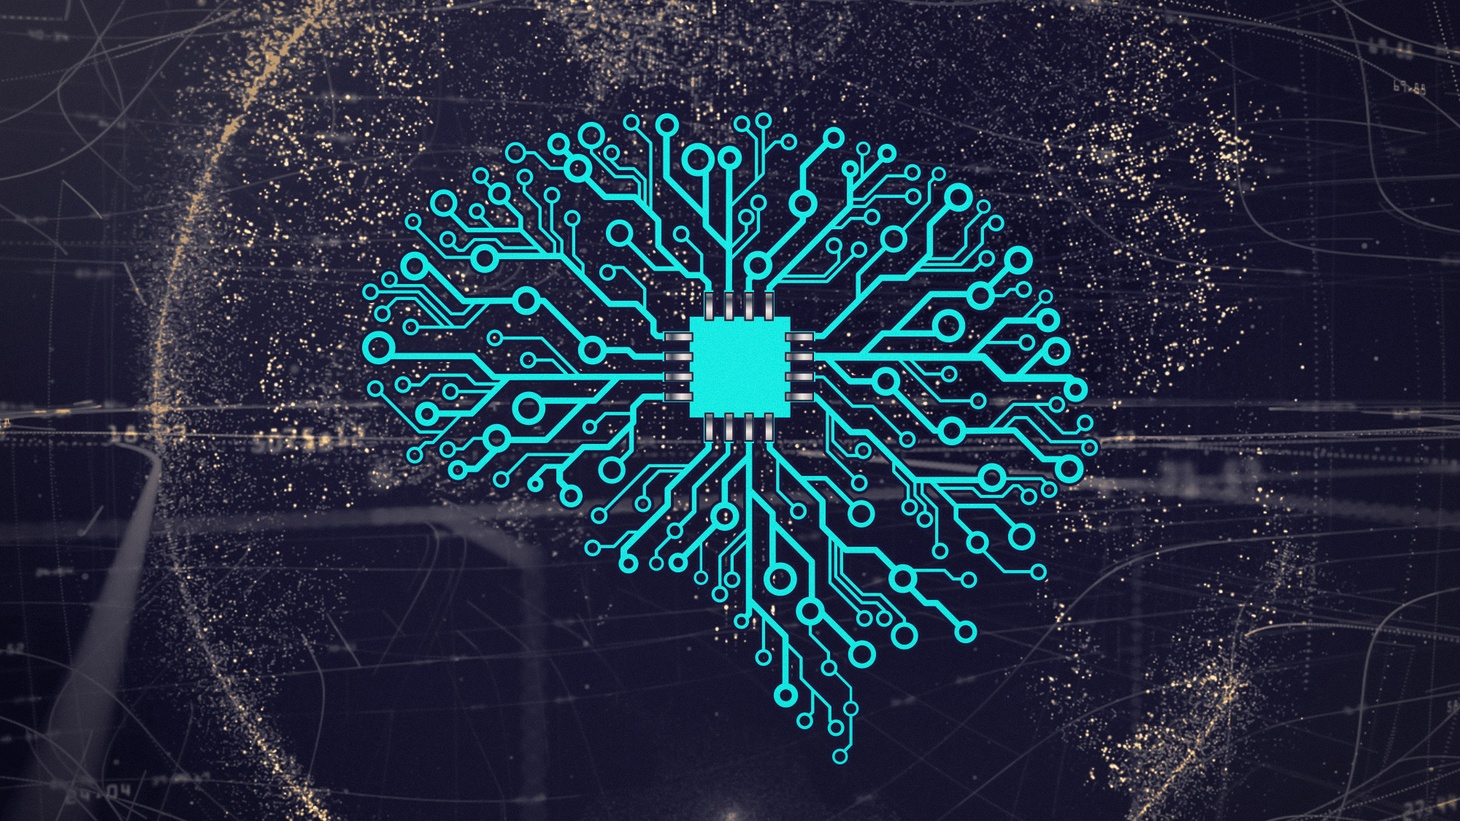 Machine learning is playing an increasingly important role in computing and artificial intelligence. Suits any article on AI, algorithms, machine learning, quantum computing, artificial intelligence.